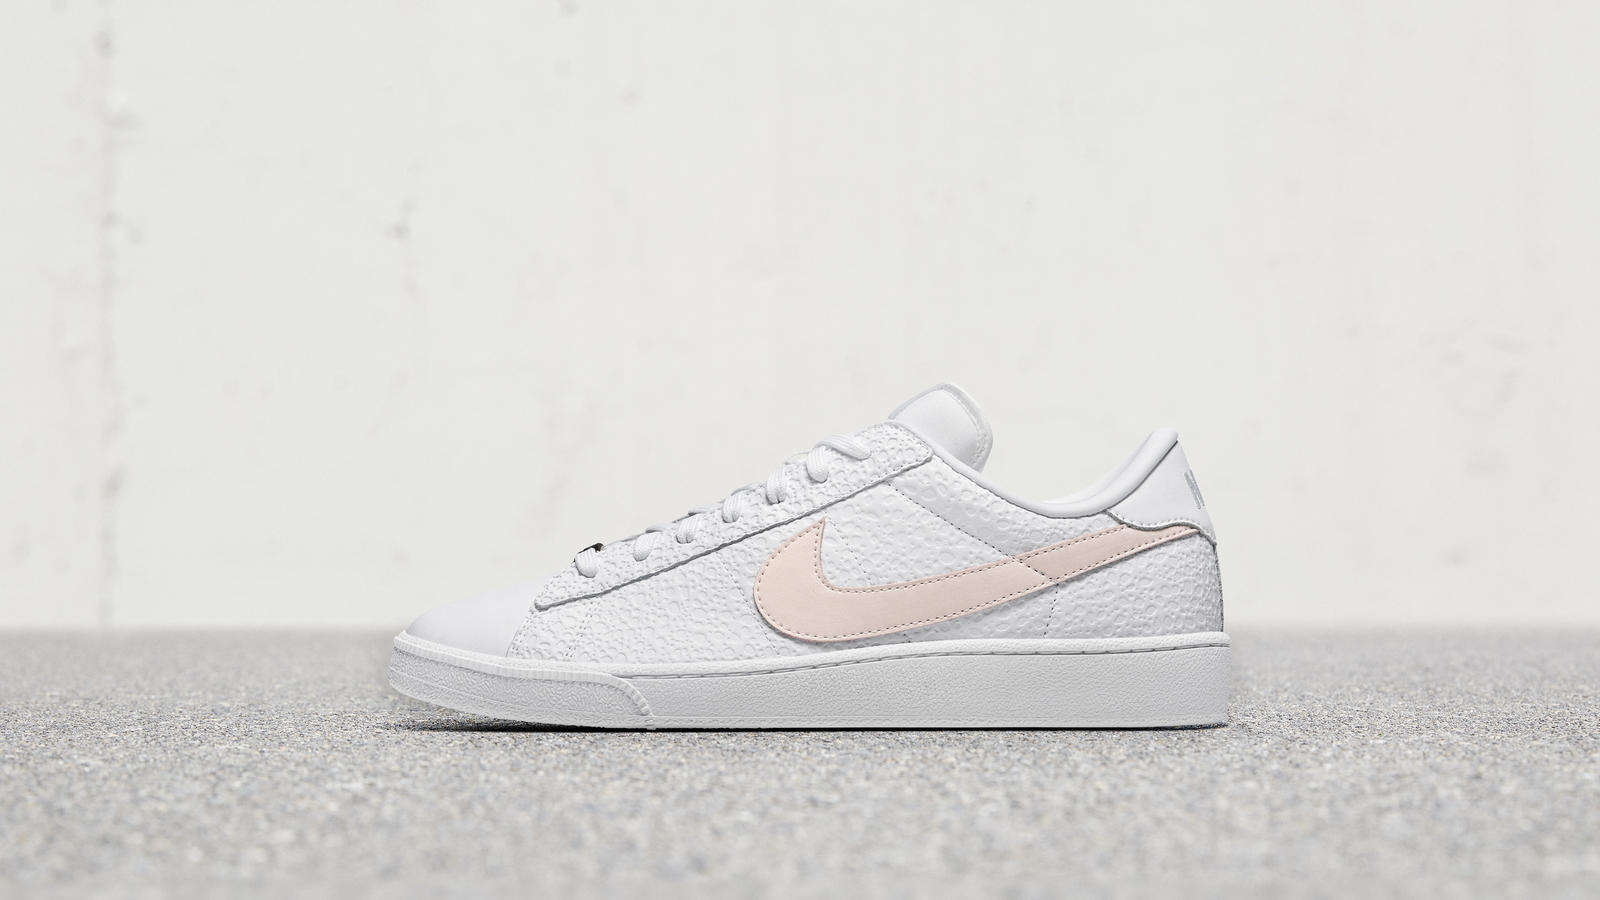 Nike Flyleather Tennis Classic SE 2